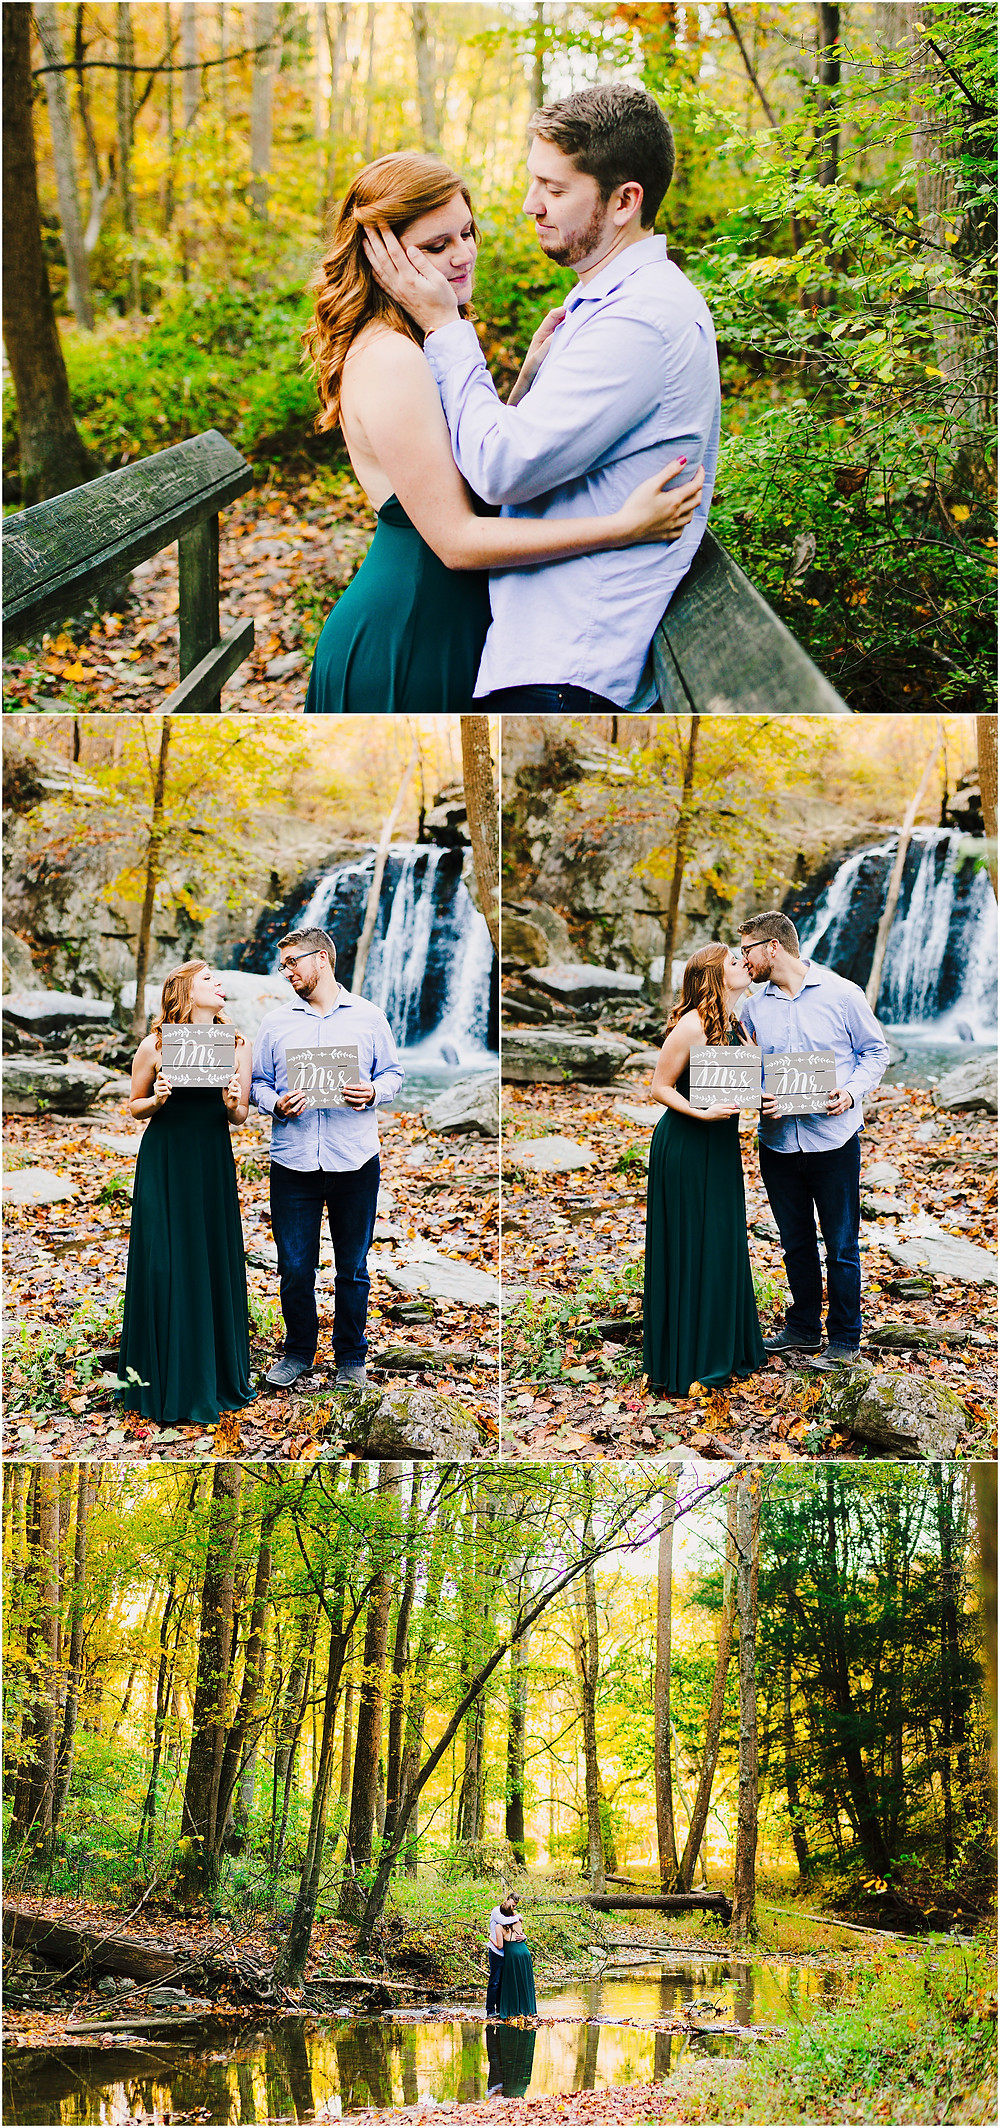 Kilgore Falls Engagement Portraits - Baltimore Wedding Photographer